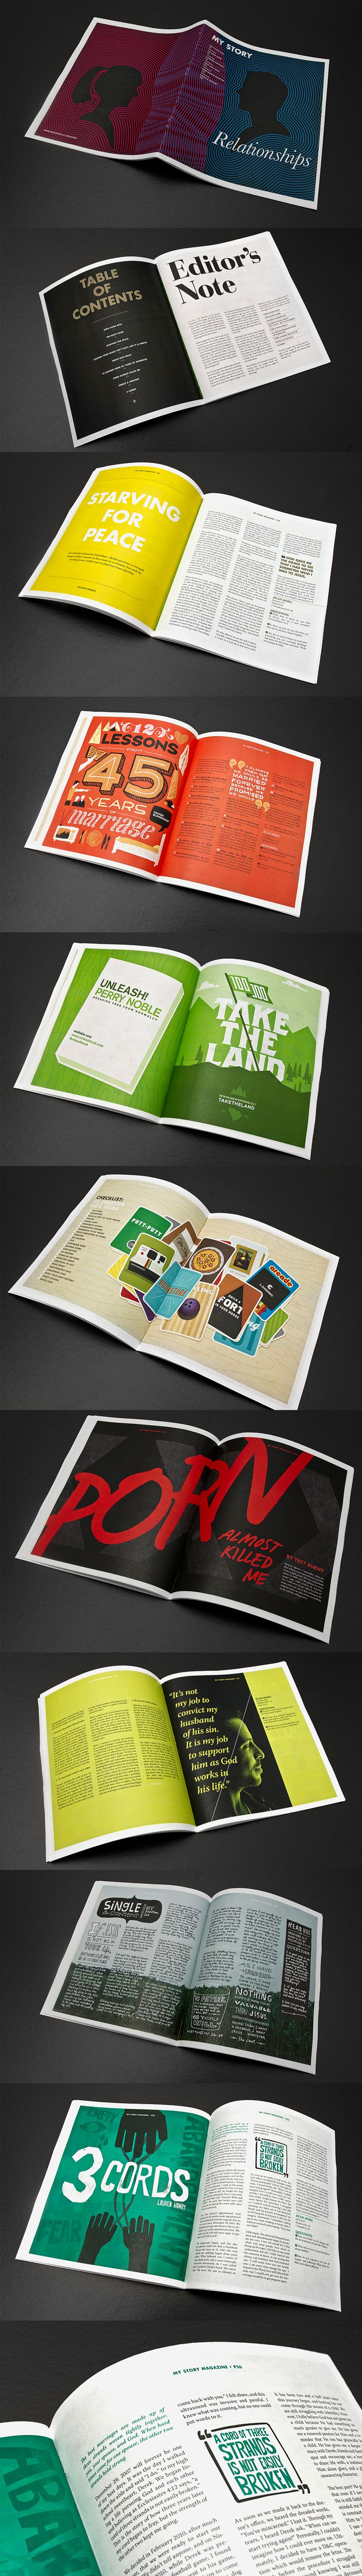 Magazine Layout by Dave Keller #layout